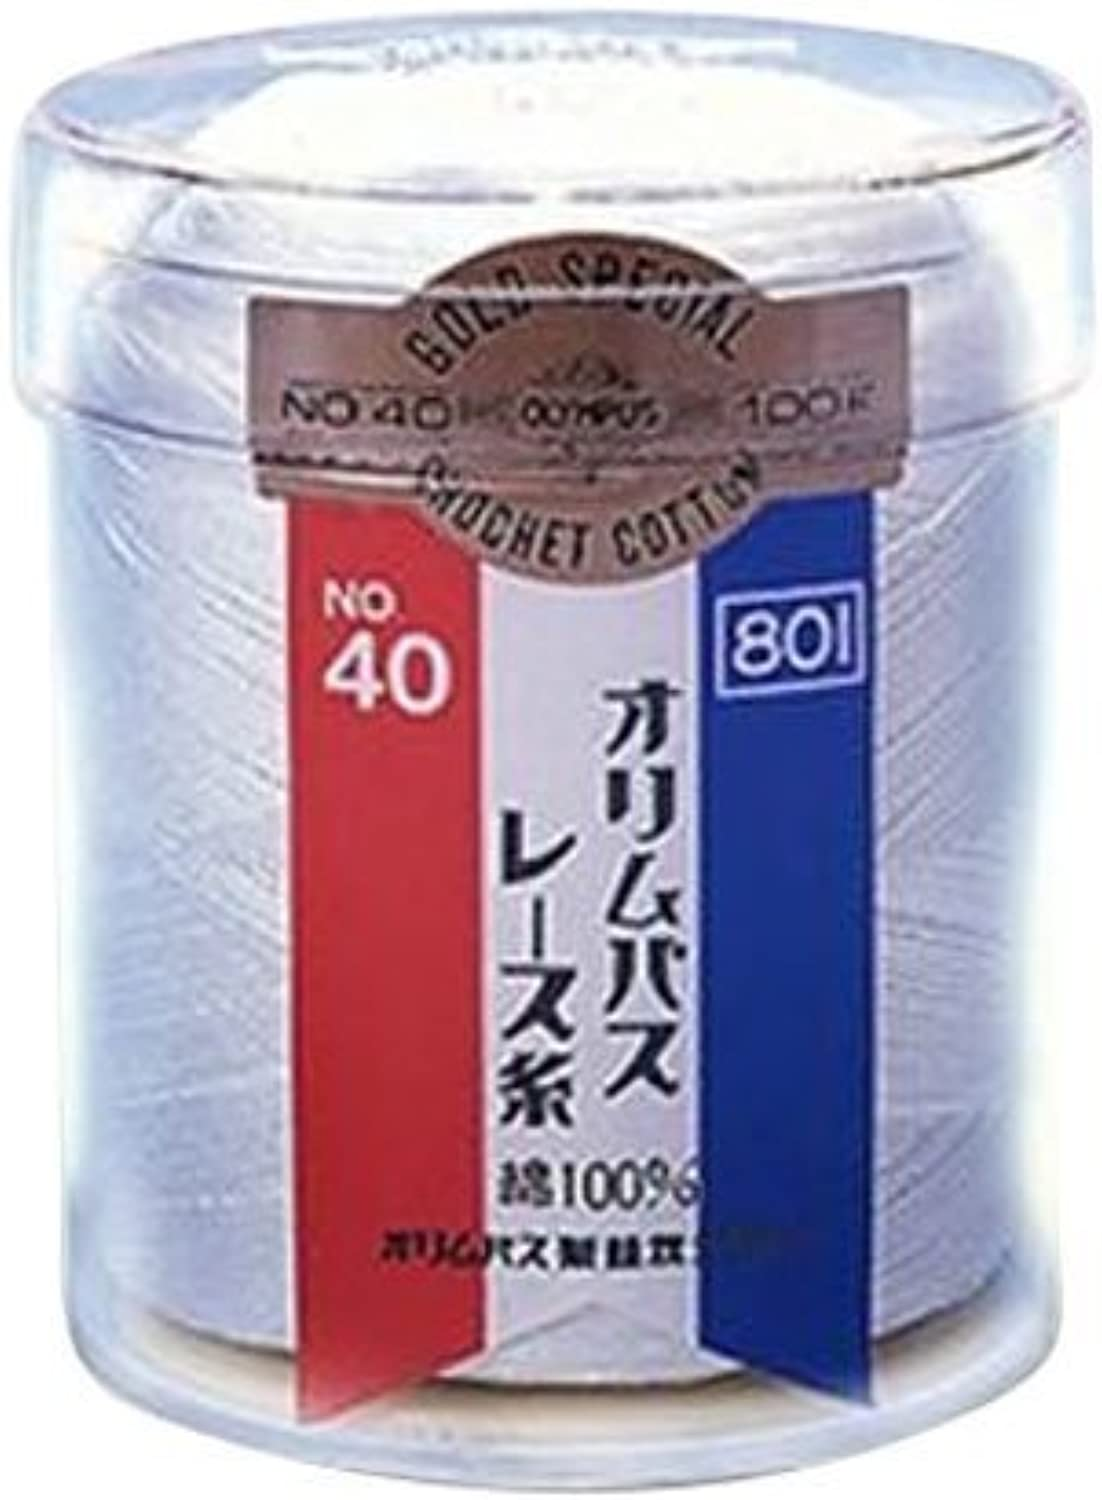 Lace thread gold SPECIAL No. 40 (white) 100 g Jade ball 6 ball